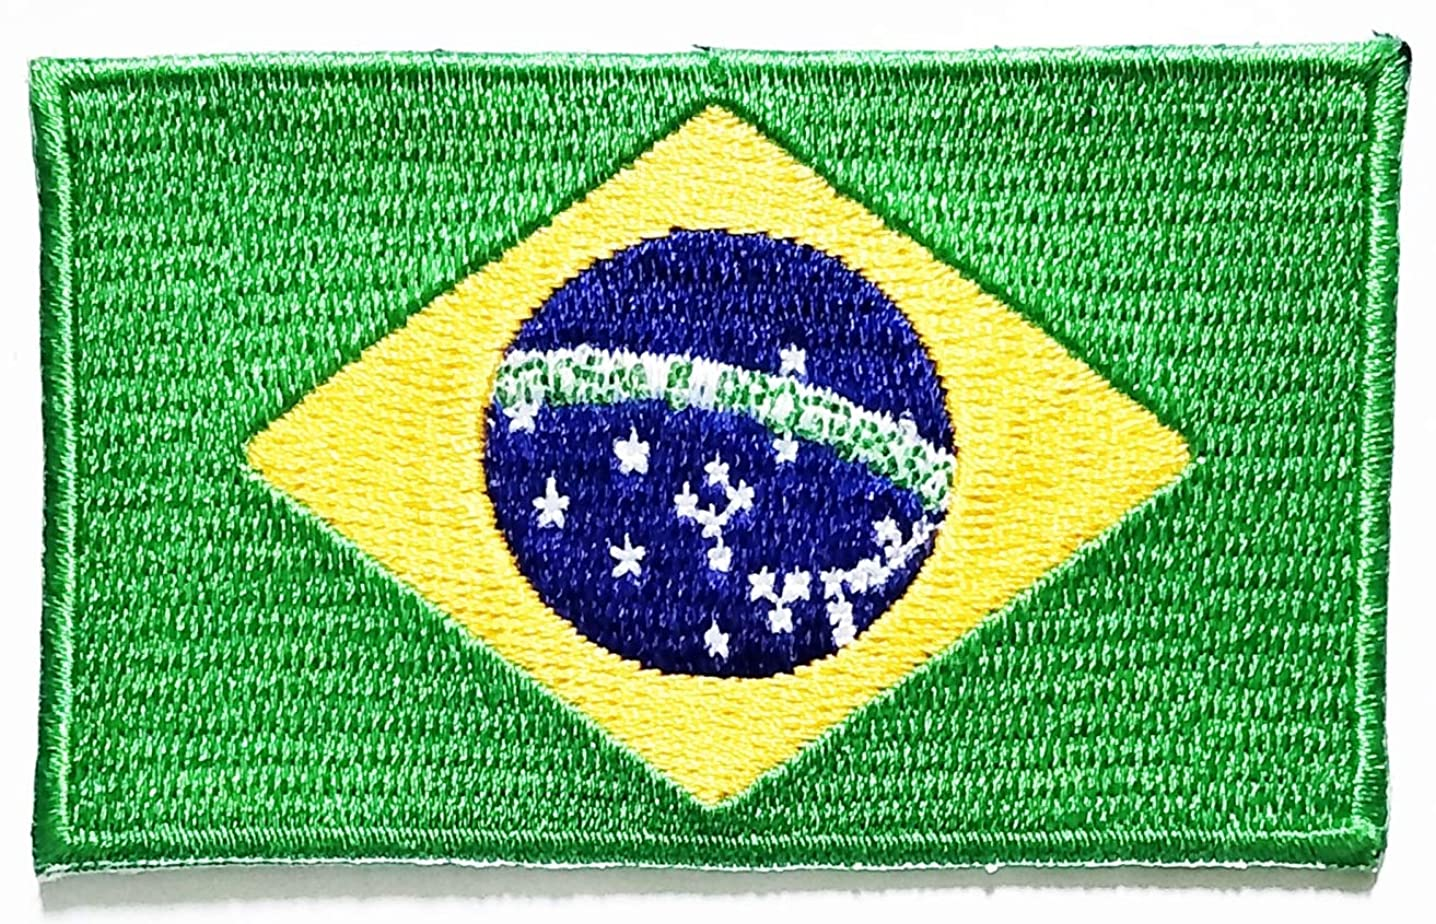 Nipitshop Patches Brazil Flag Embroidered Patch National Emblem Iron On Sew On Patch Embroidery Iron On Flag Appliques for Craft Sewing Clothing